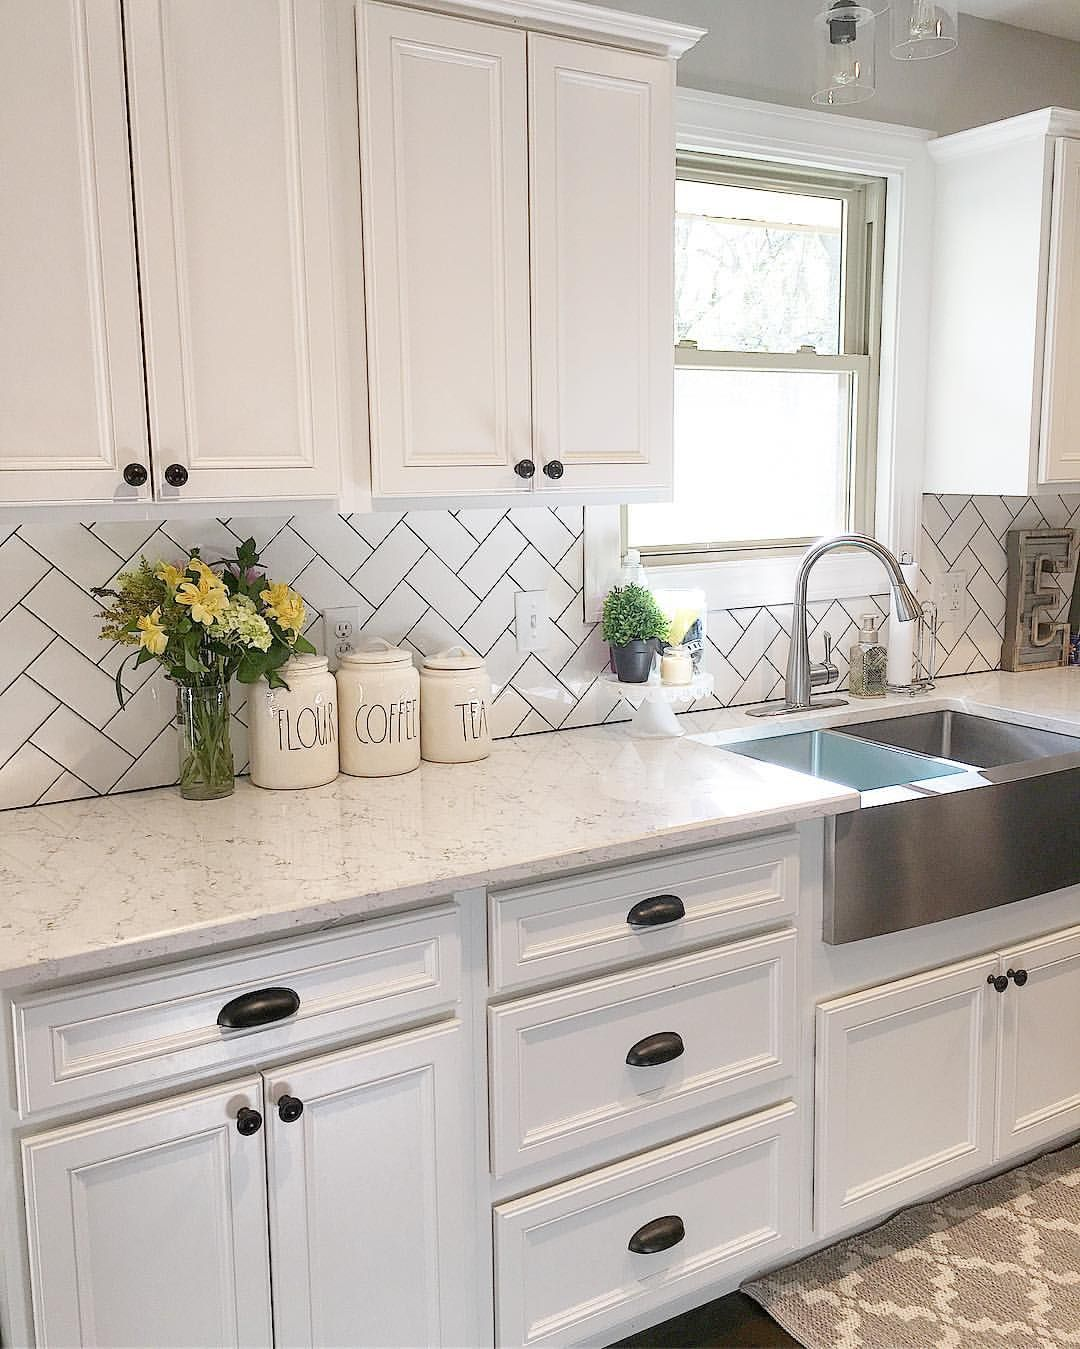 White Kitchen Herringbone Backsplash white kitchen, kitchen decor, subway tile, herringbone subway tile